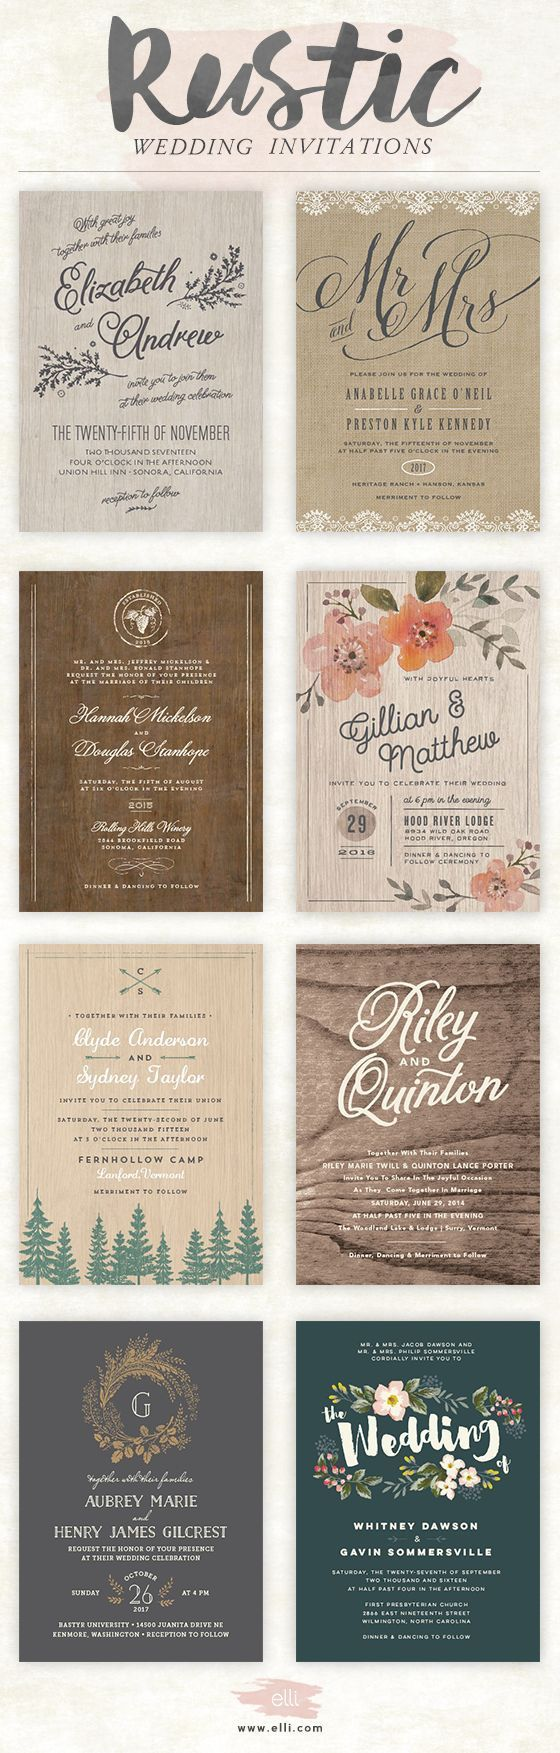 Rustic wedding invitations Bella Collina Weddings